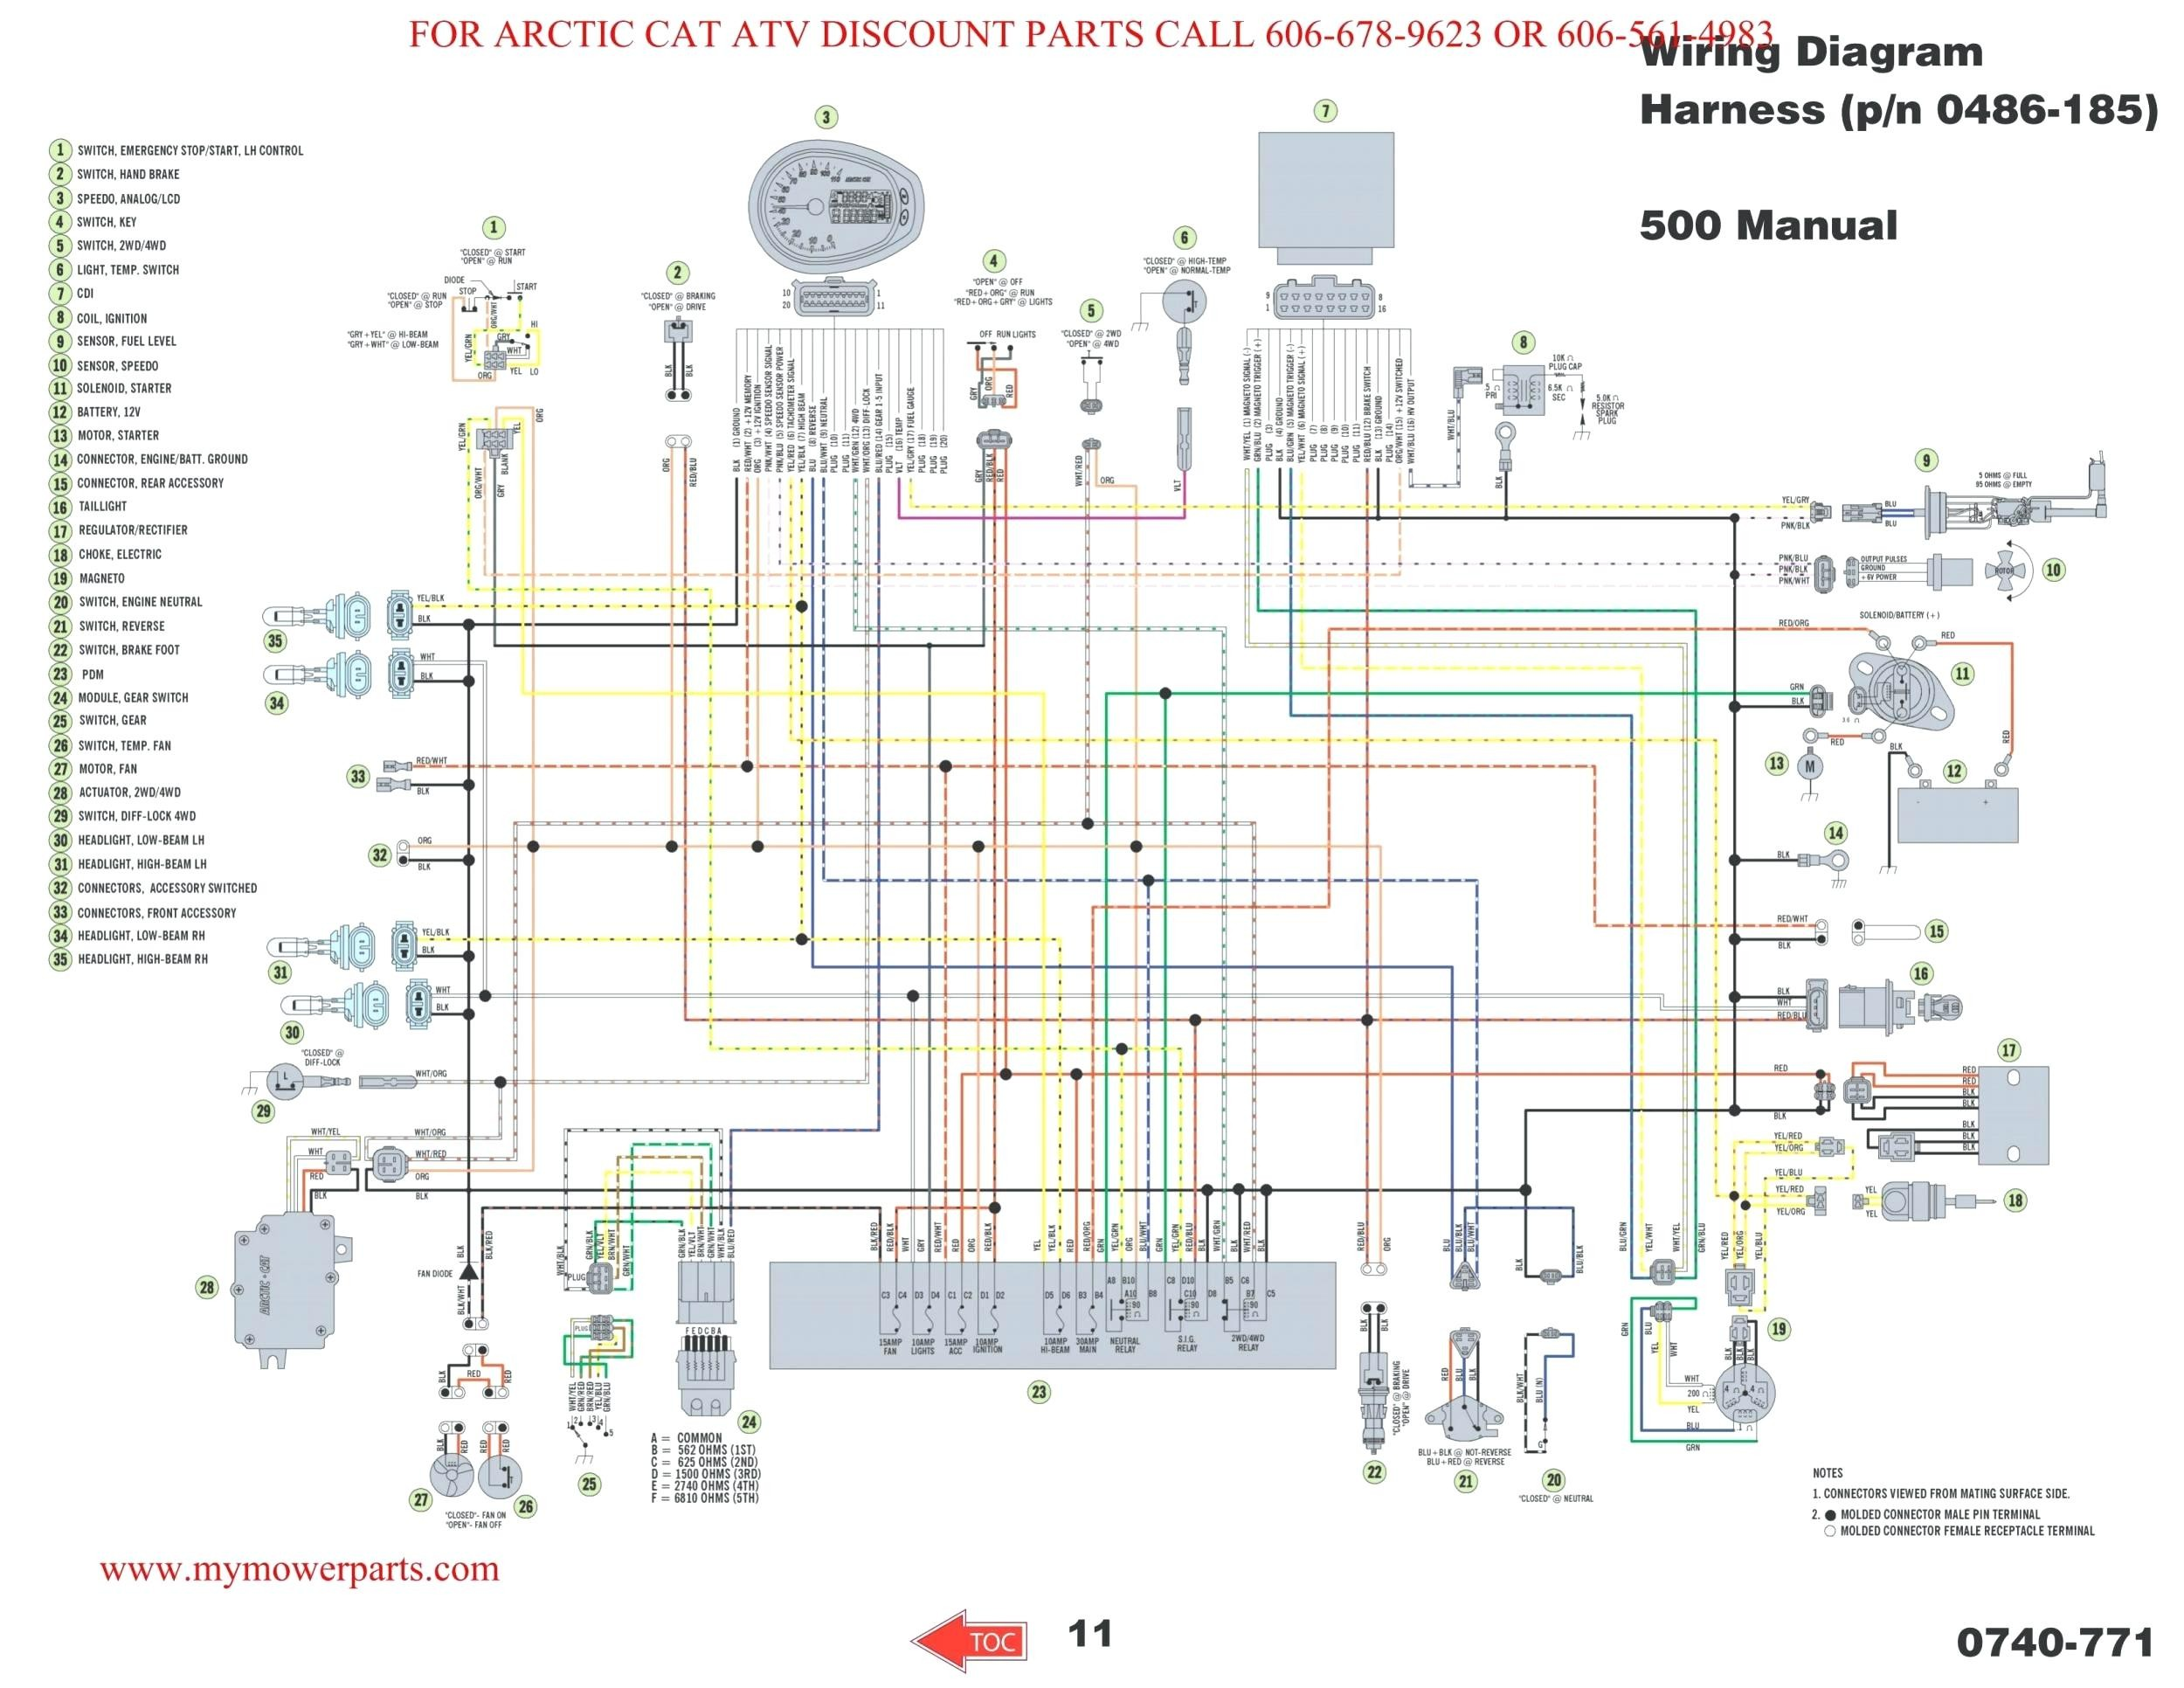 1990 Toyota Radio Wiring Diagram | Wiring Liry on 1990 toyota parts catalog, 1990 toyota starter wiring, 1990 toyota fuse box diagram, 1991 toyota wiring diagram,